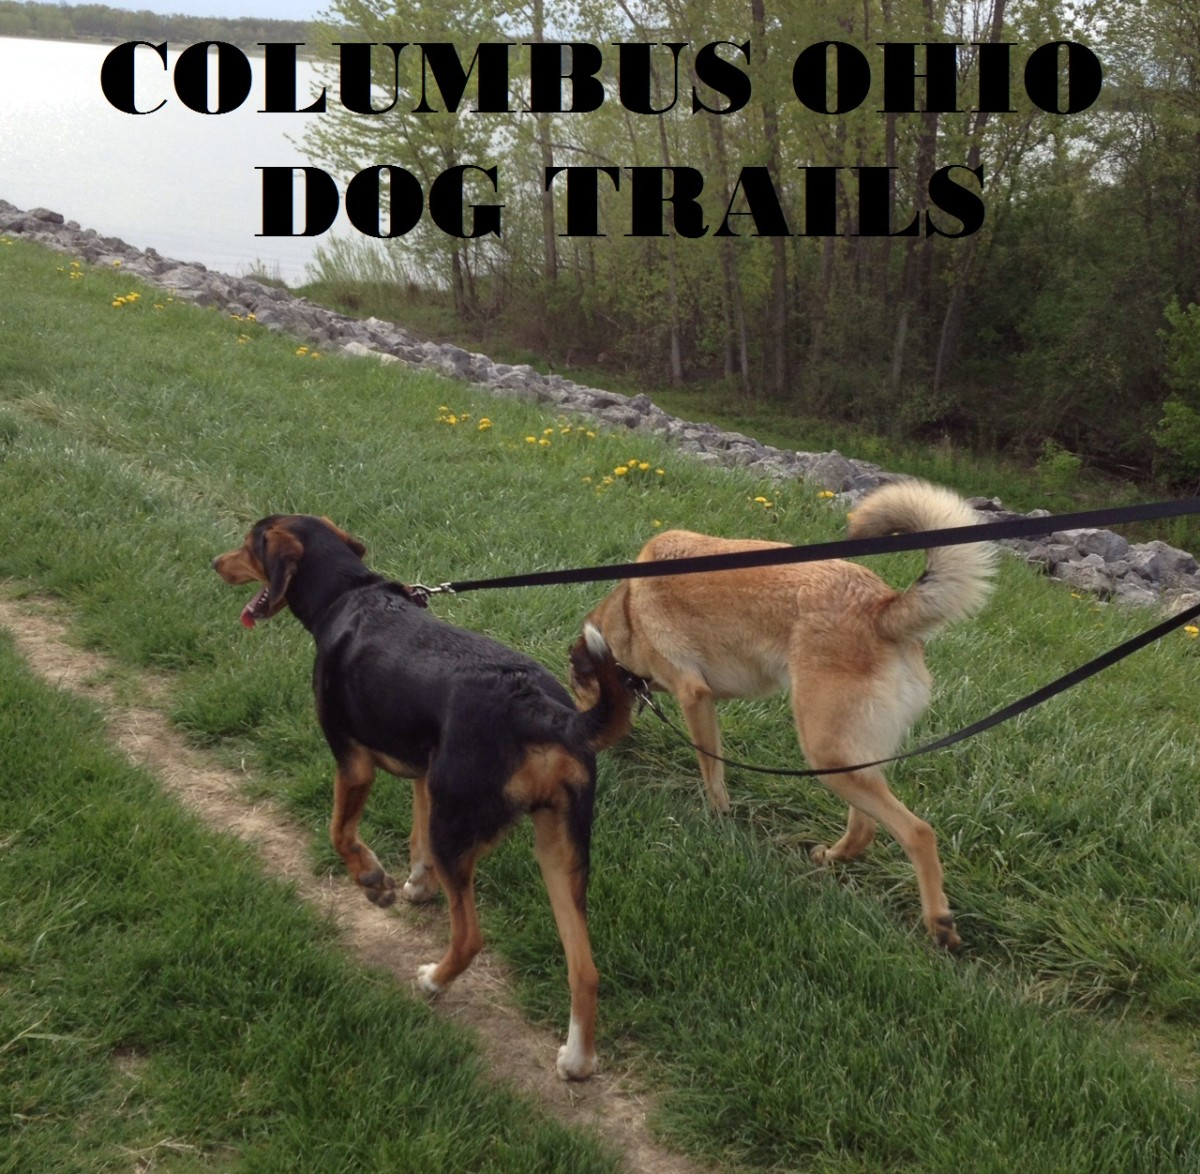 Five great dog trails near Columbus Ohio